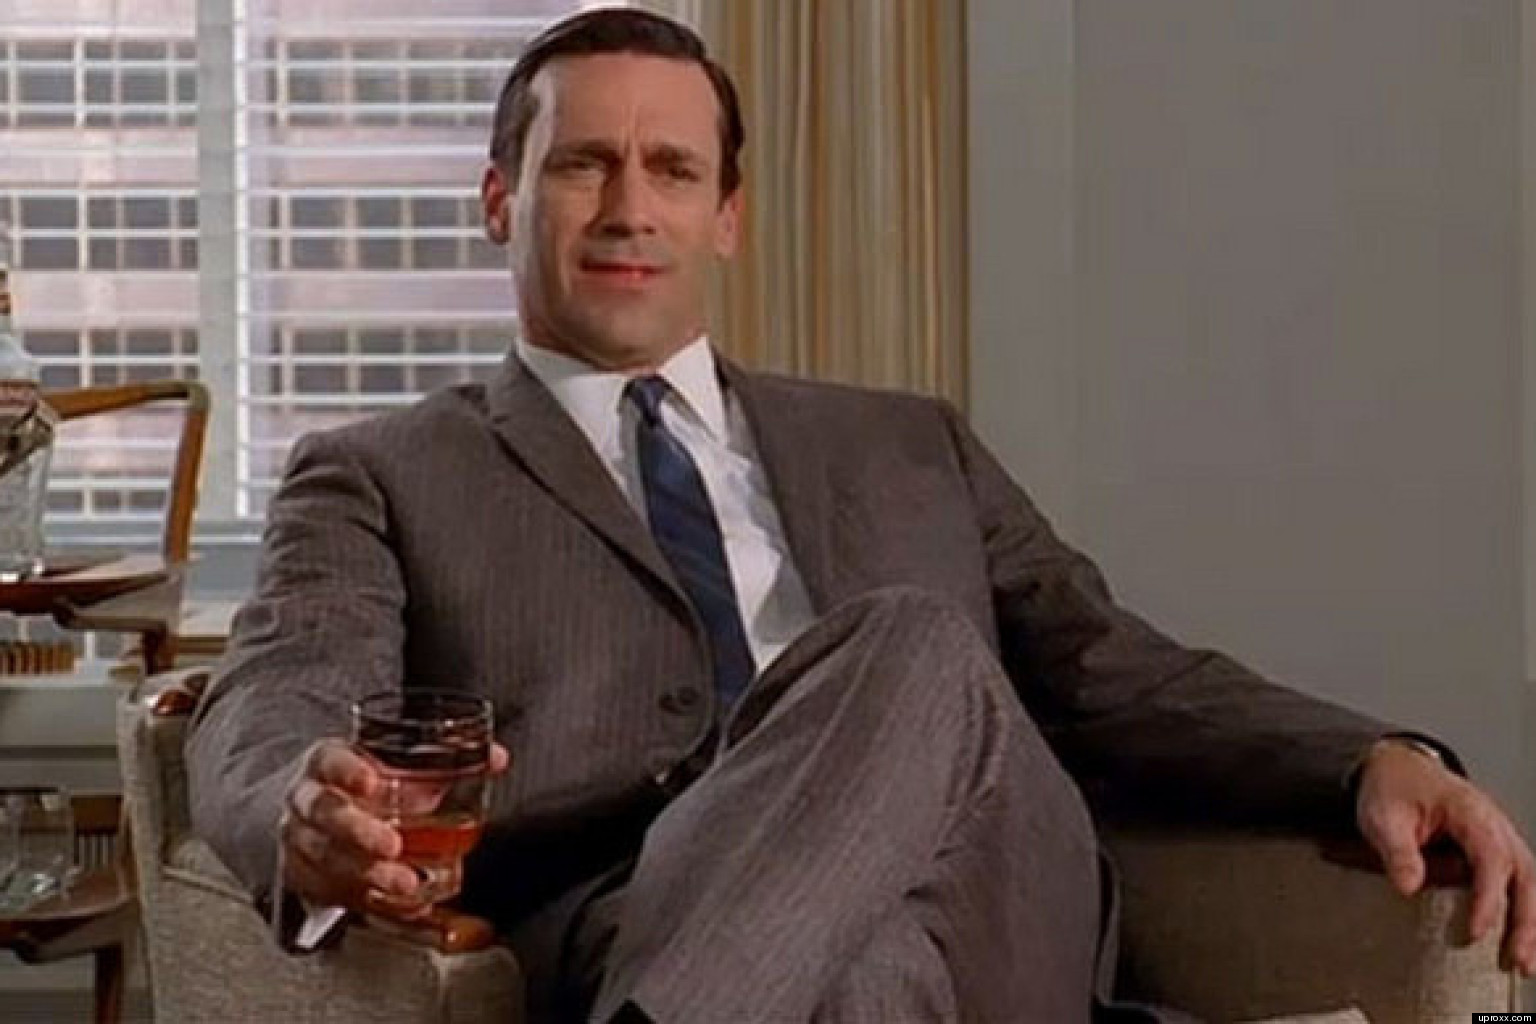 Will Don Draper Ever Fully Change?